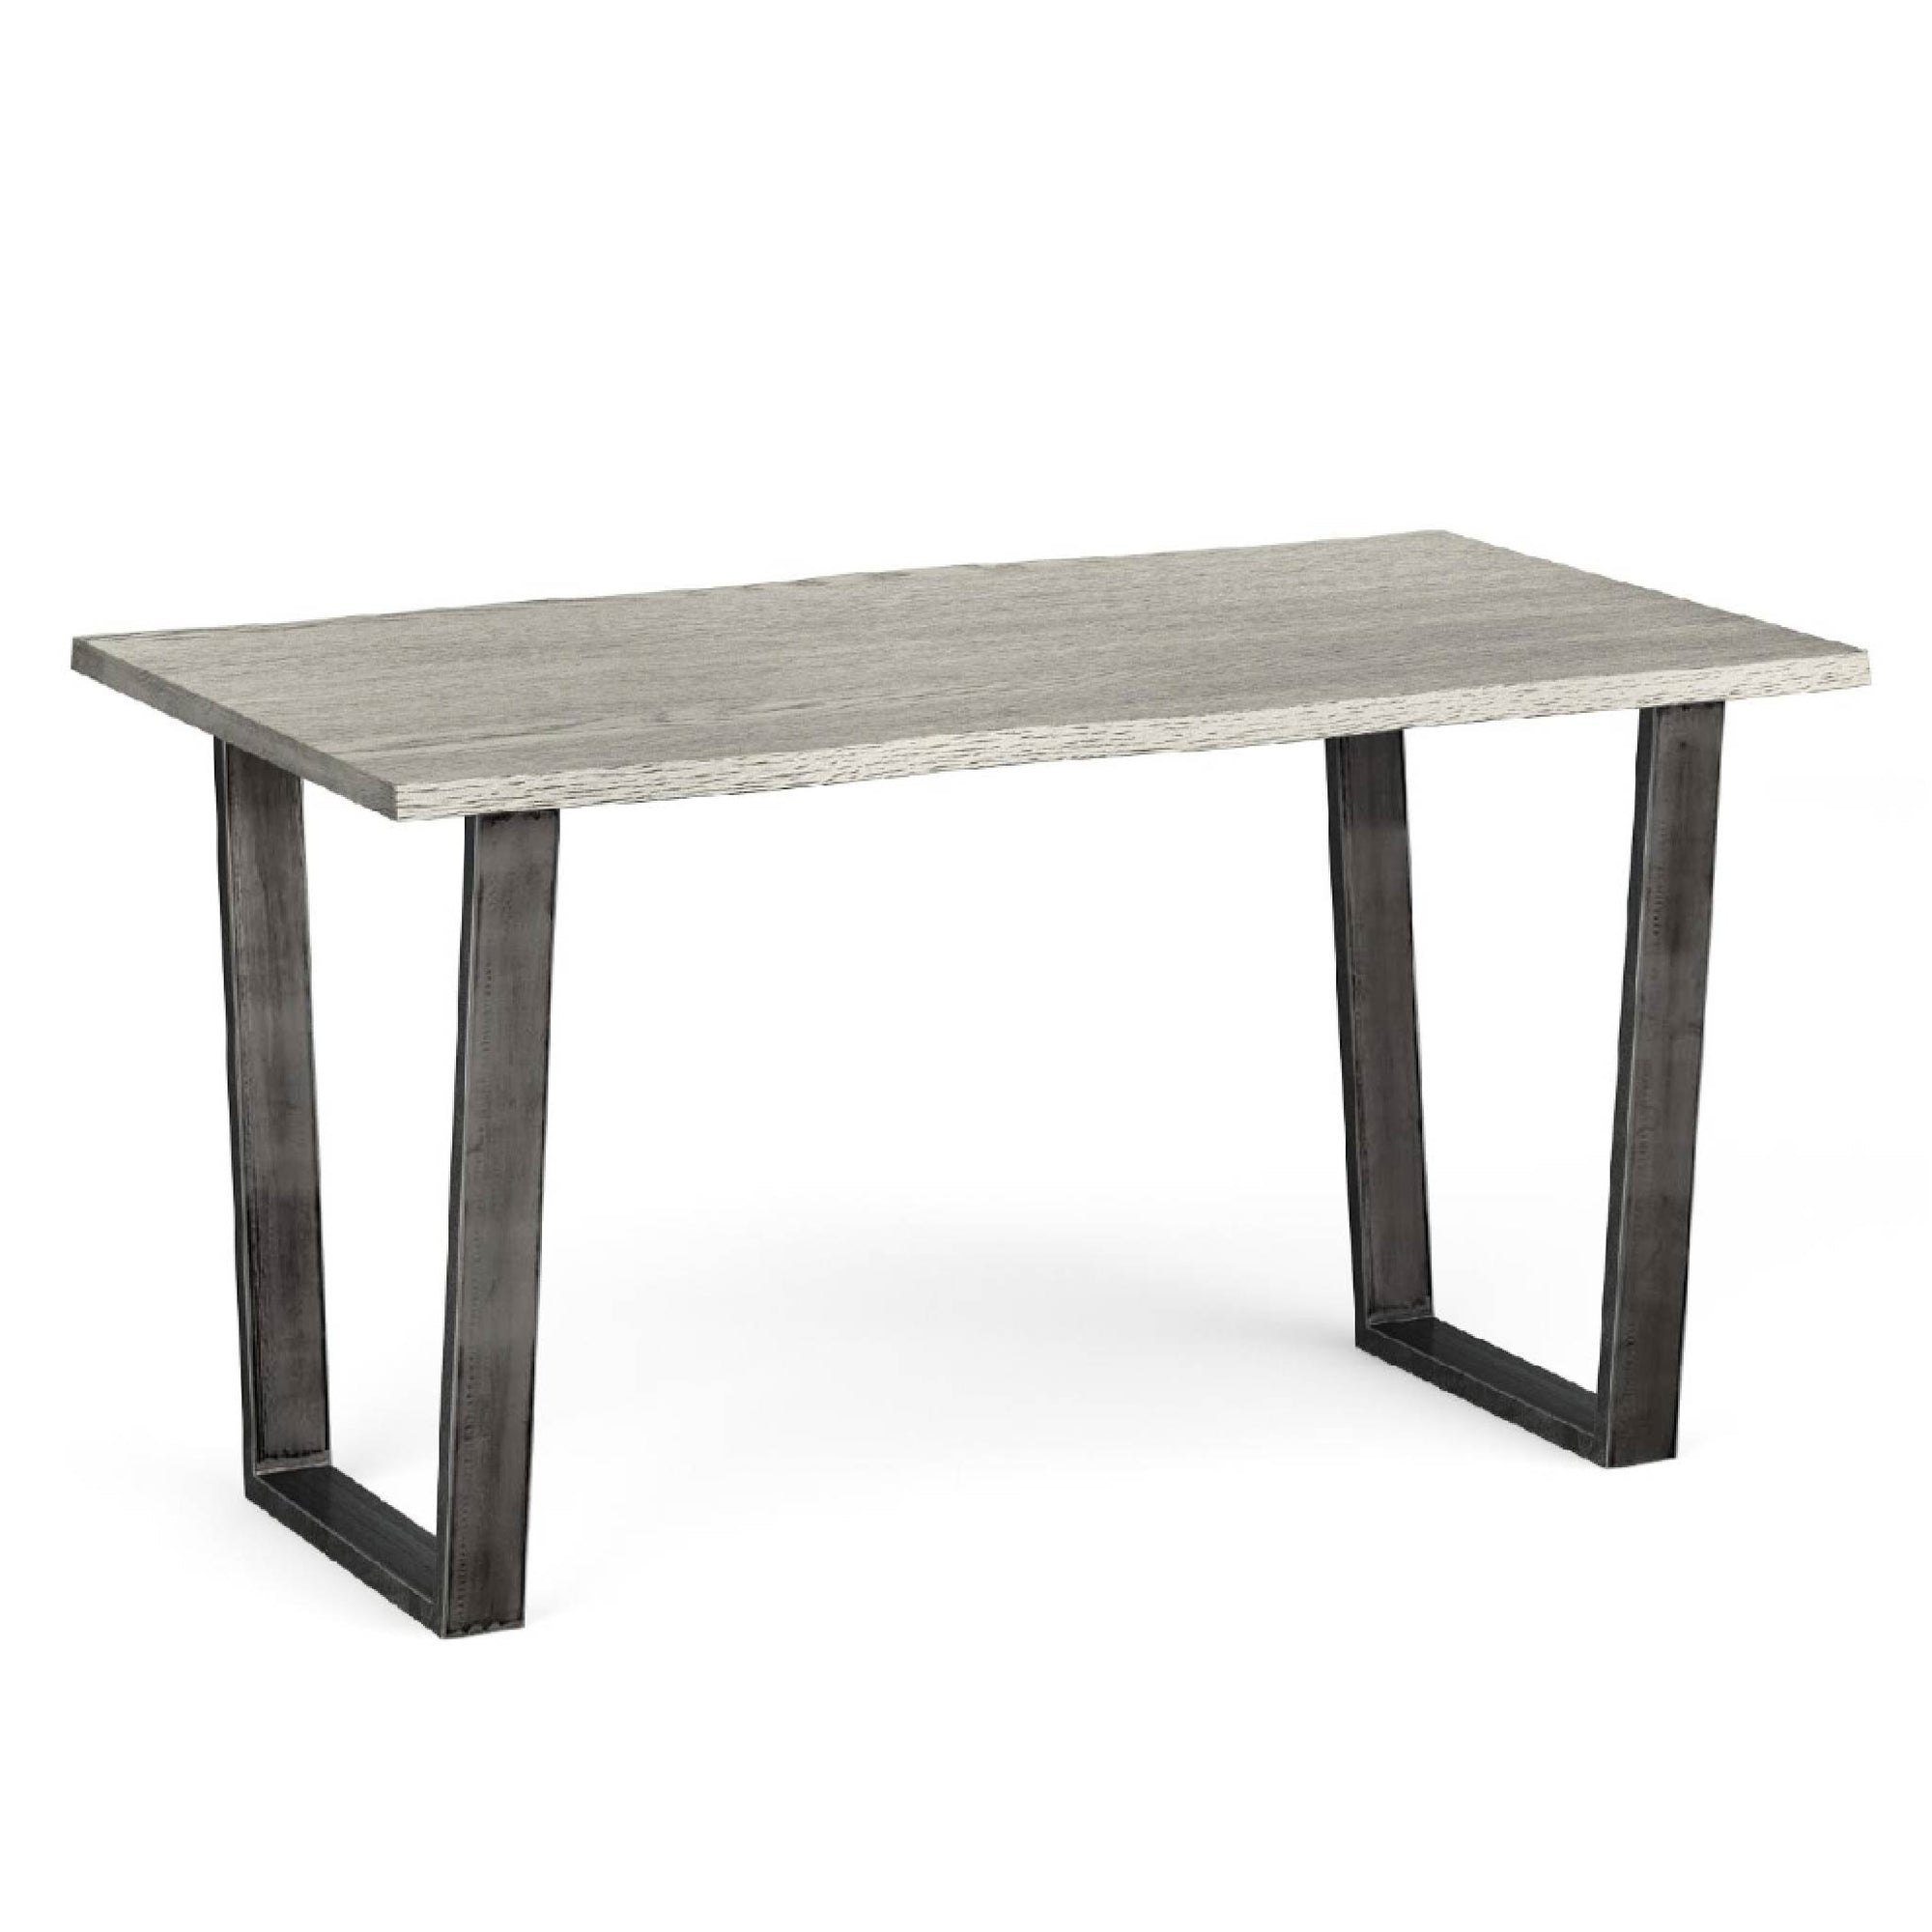 The Soho Grey Industrial Dining Table 140cm from Roseland Furniture